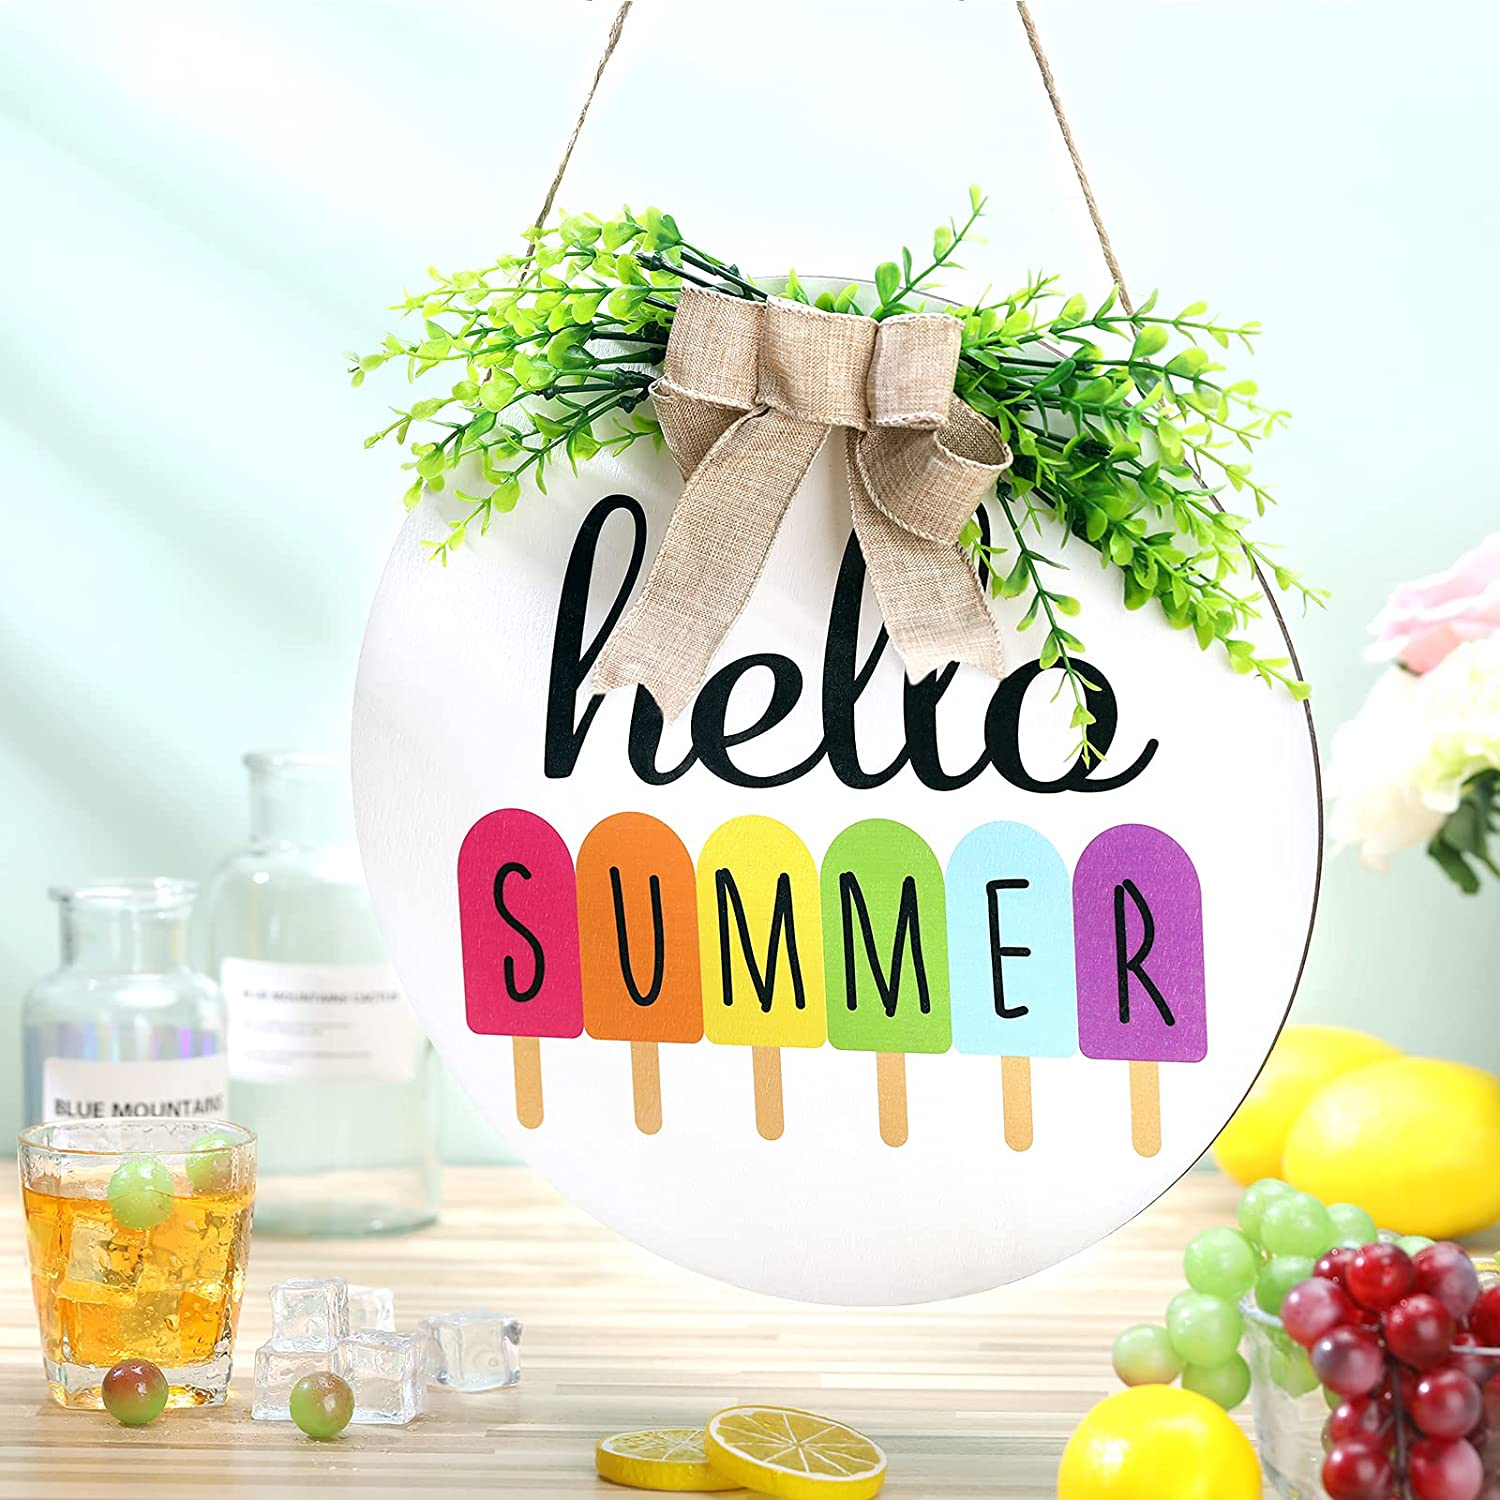 Jetec Hello Summer Door Sign Rustic Popsicle Wooden Door Sign Hanging Round Porch Decor with Burlap Bow Wreaths Front Door Decor for Summer Farmhouse Home Porch Garden Yard Decor, 11.8 Inch (White)